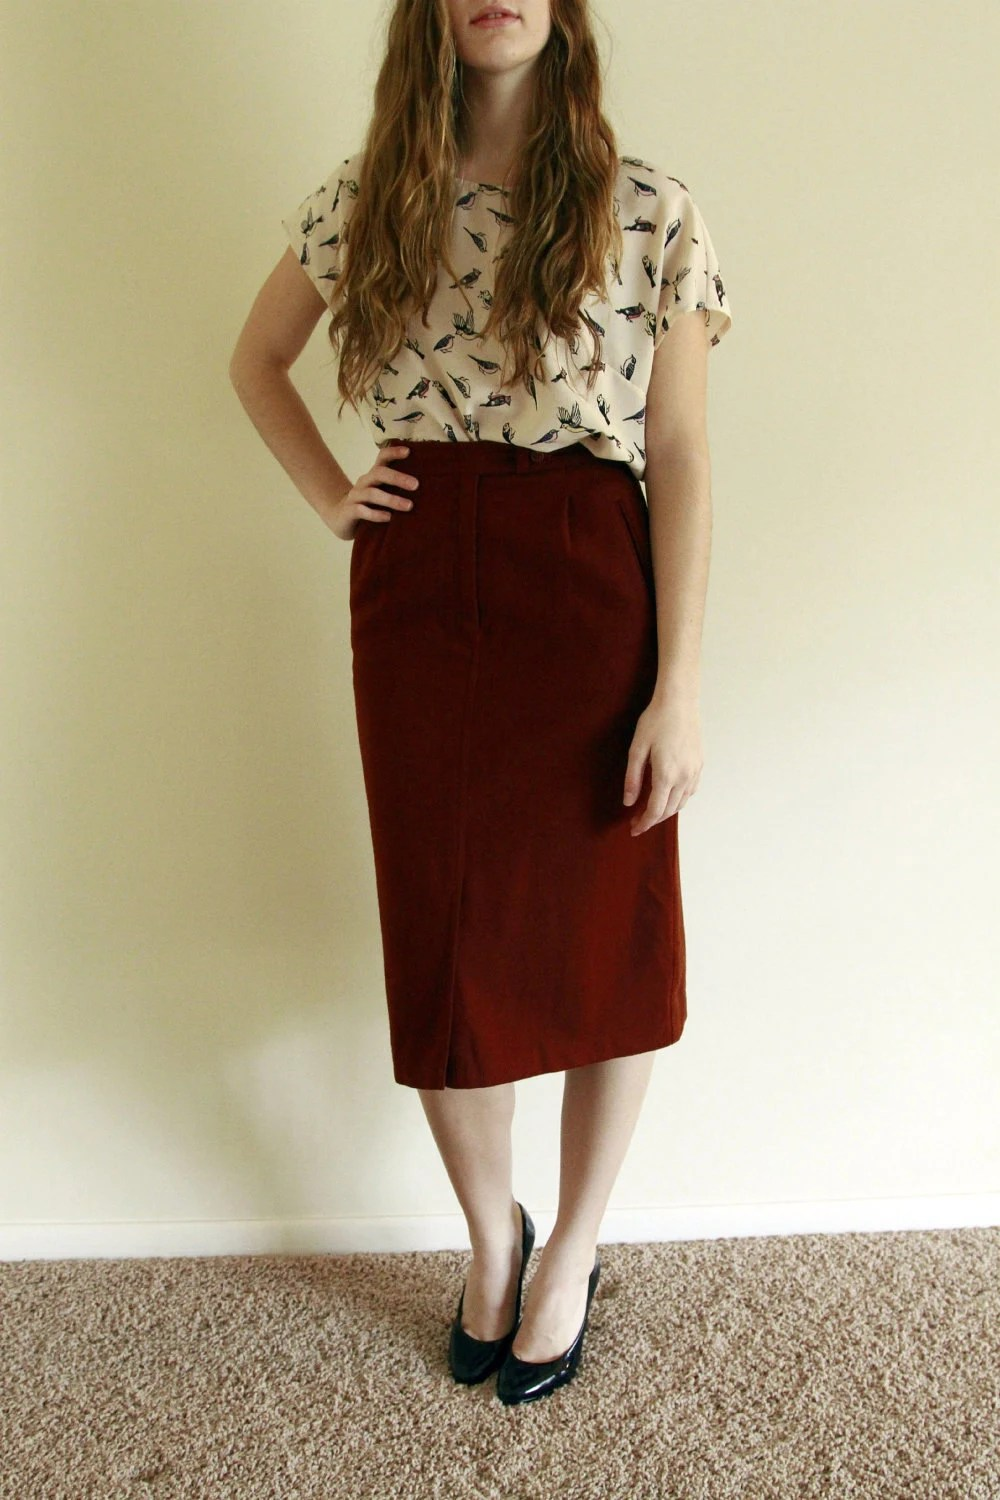 Vintage 1970s Woollen Pencil Skirt by Ateaperdu